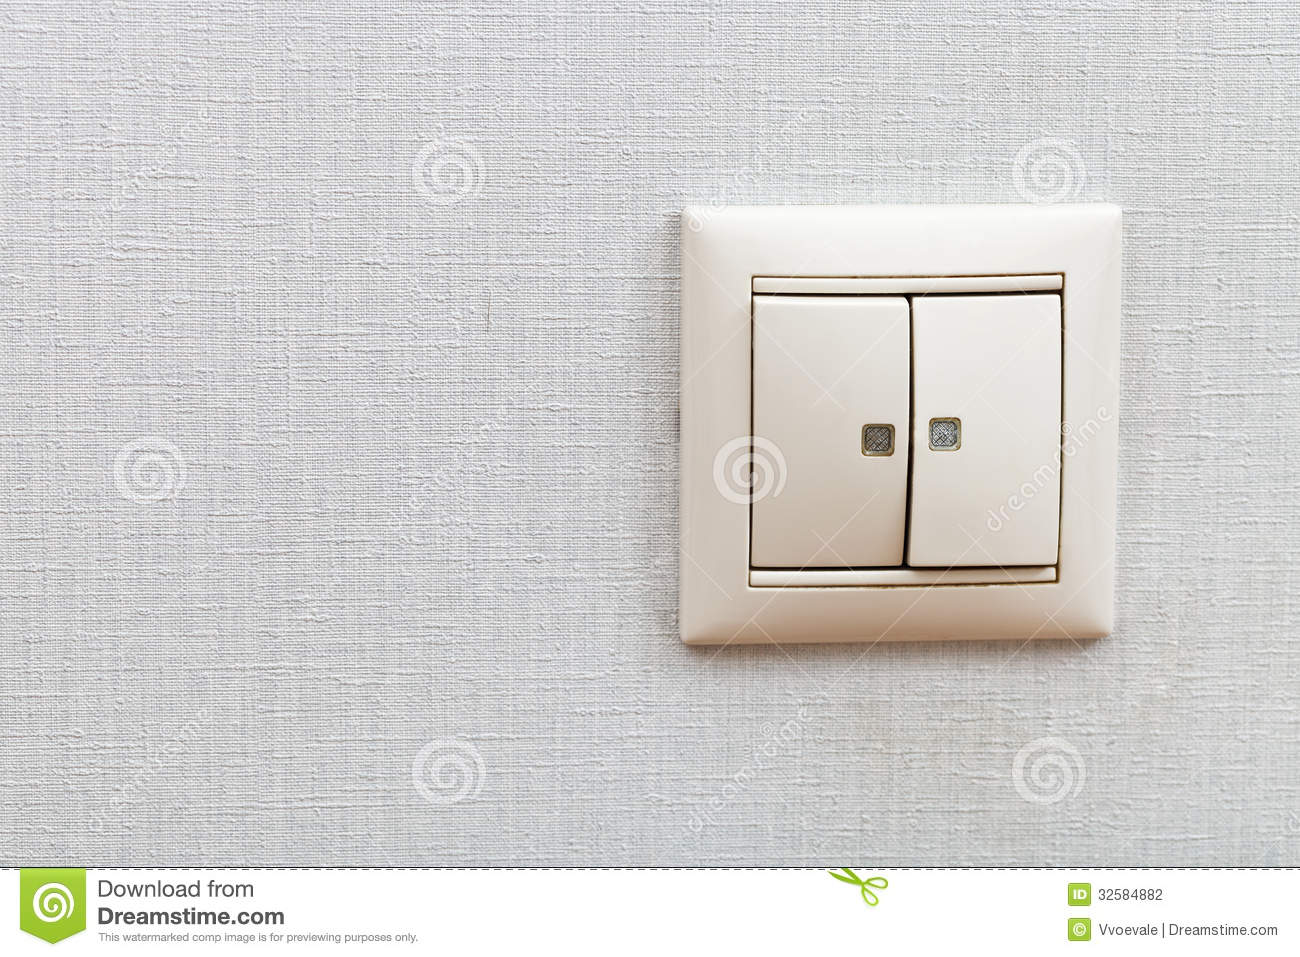 Wall mounted light switch stock photo image of plastic 32584882 wall mounted light switch mozeypictures